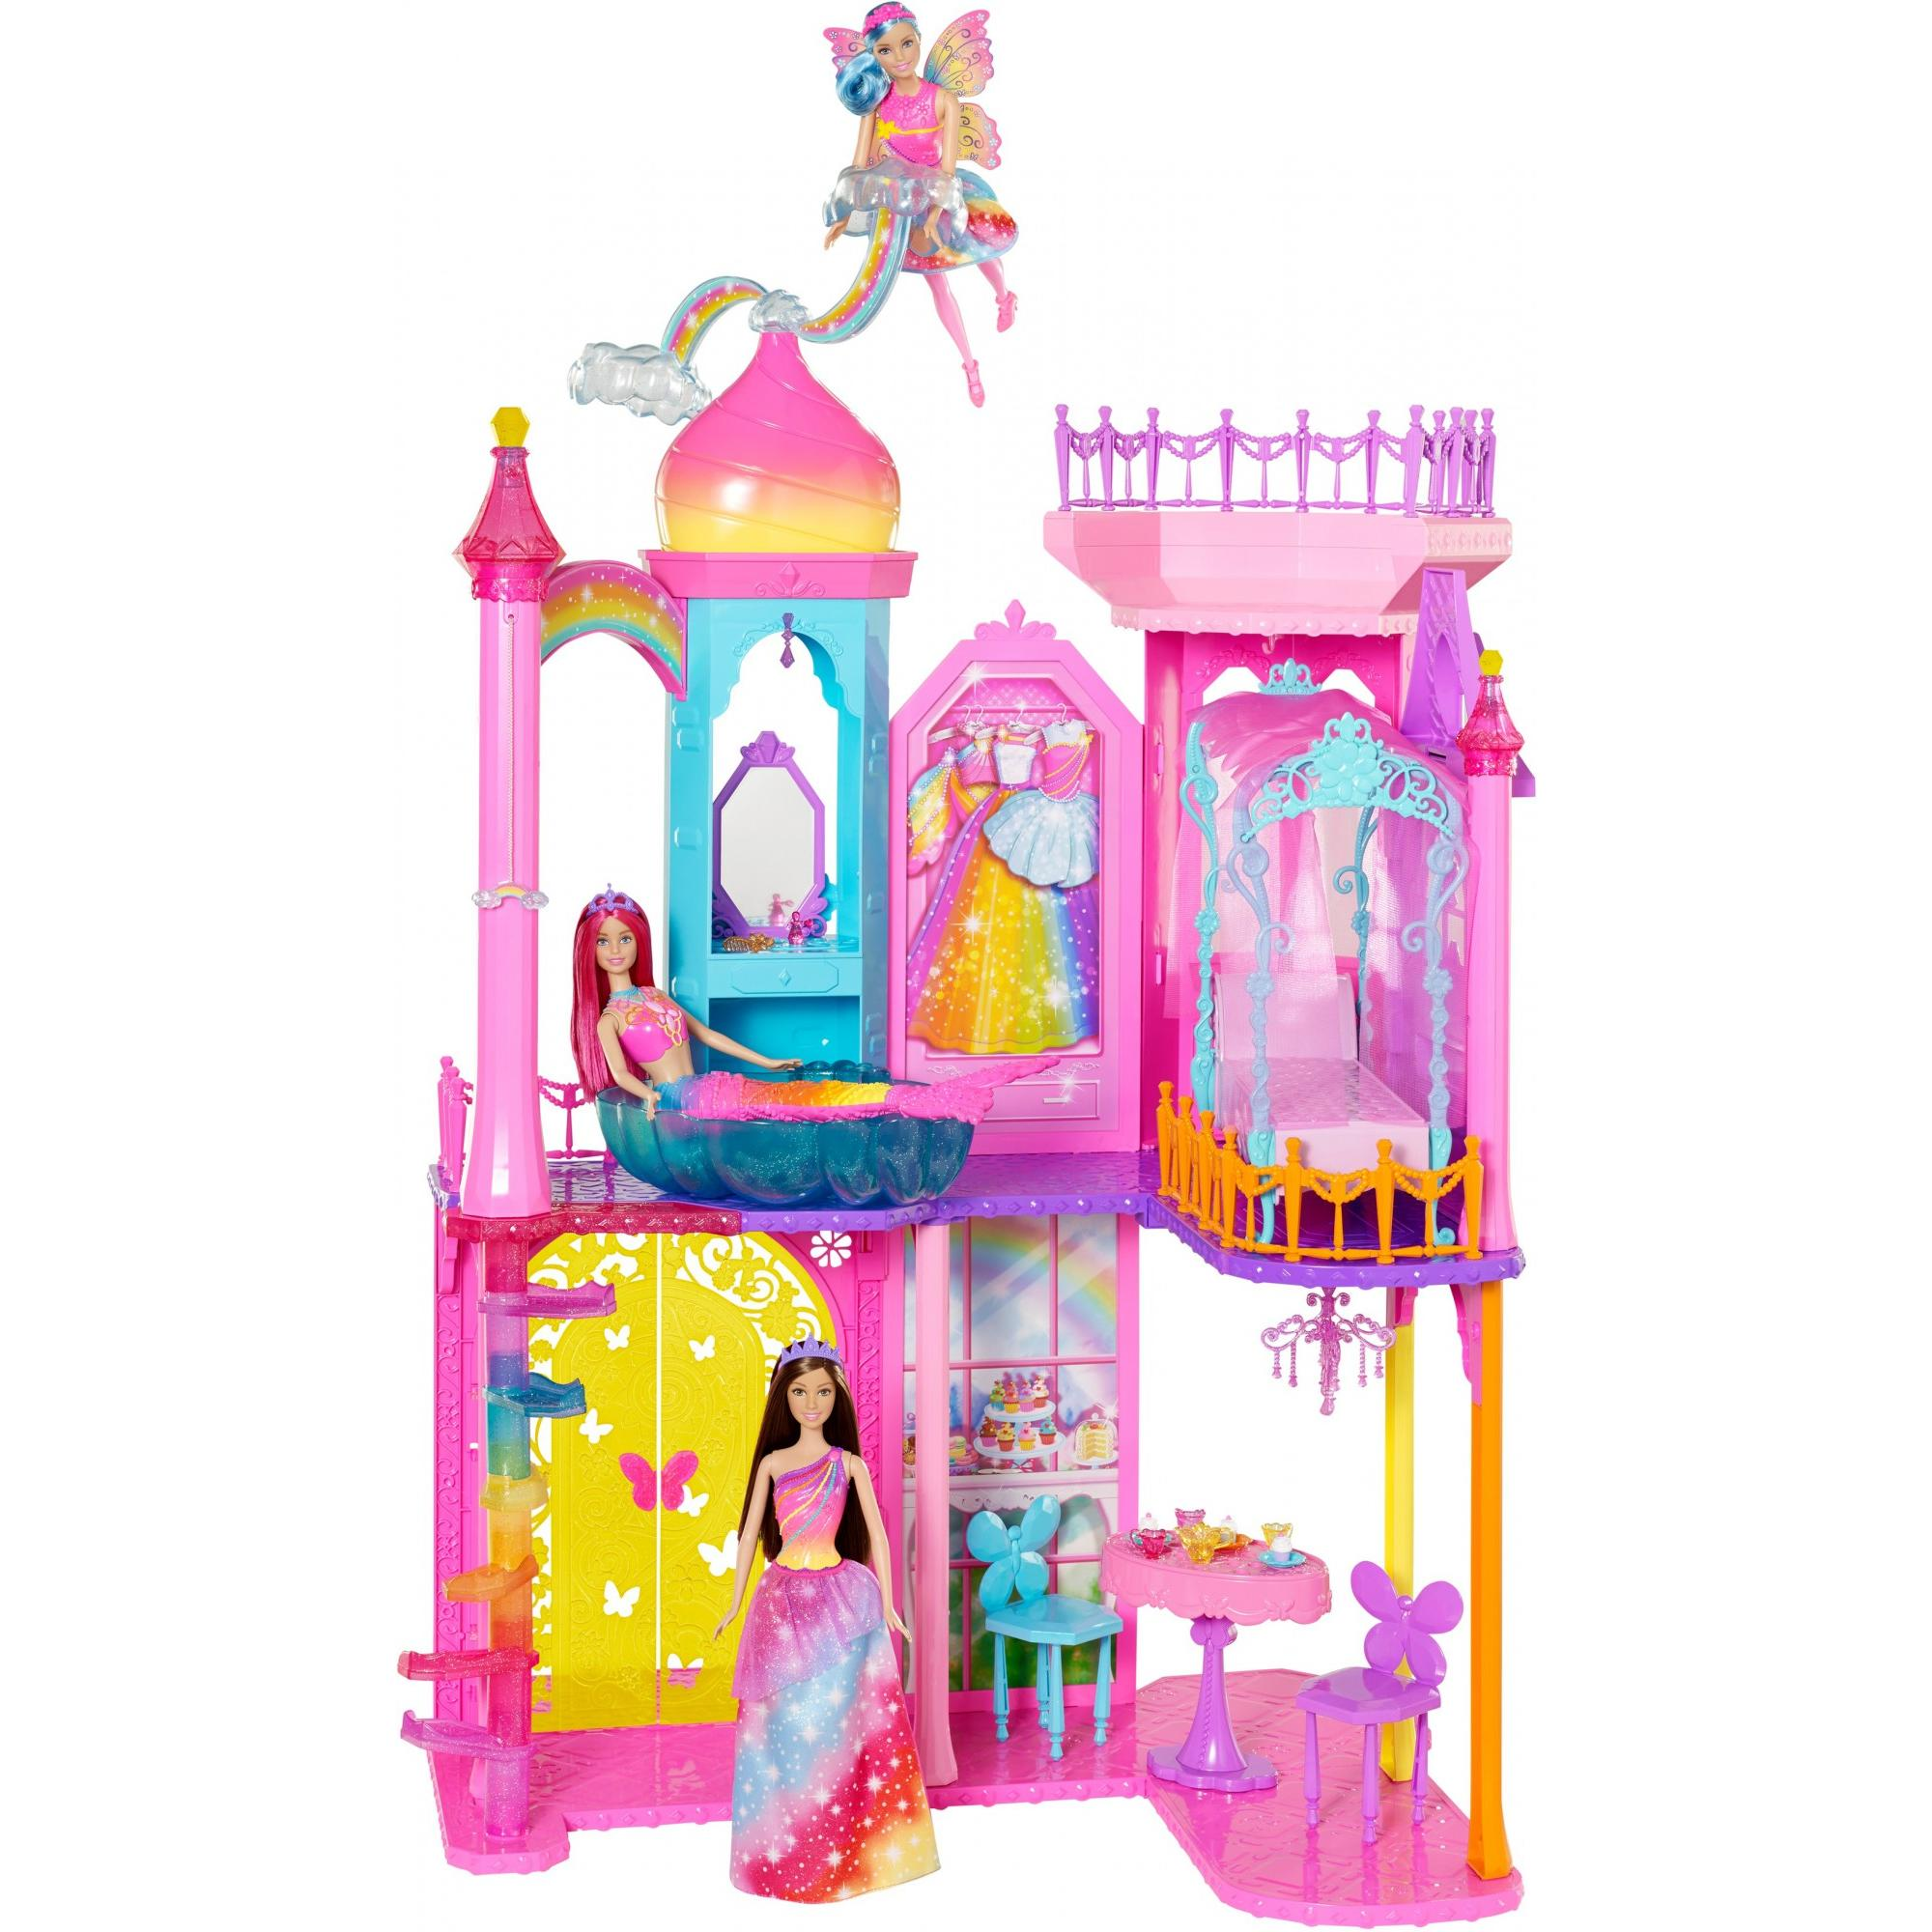 Barbie Rainbow Cove Princess Castle Playset by MATTEL INC.